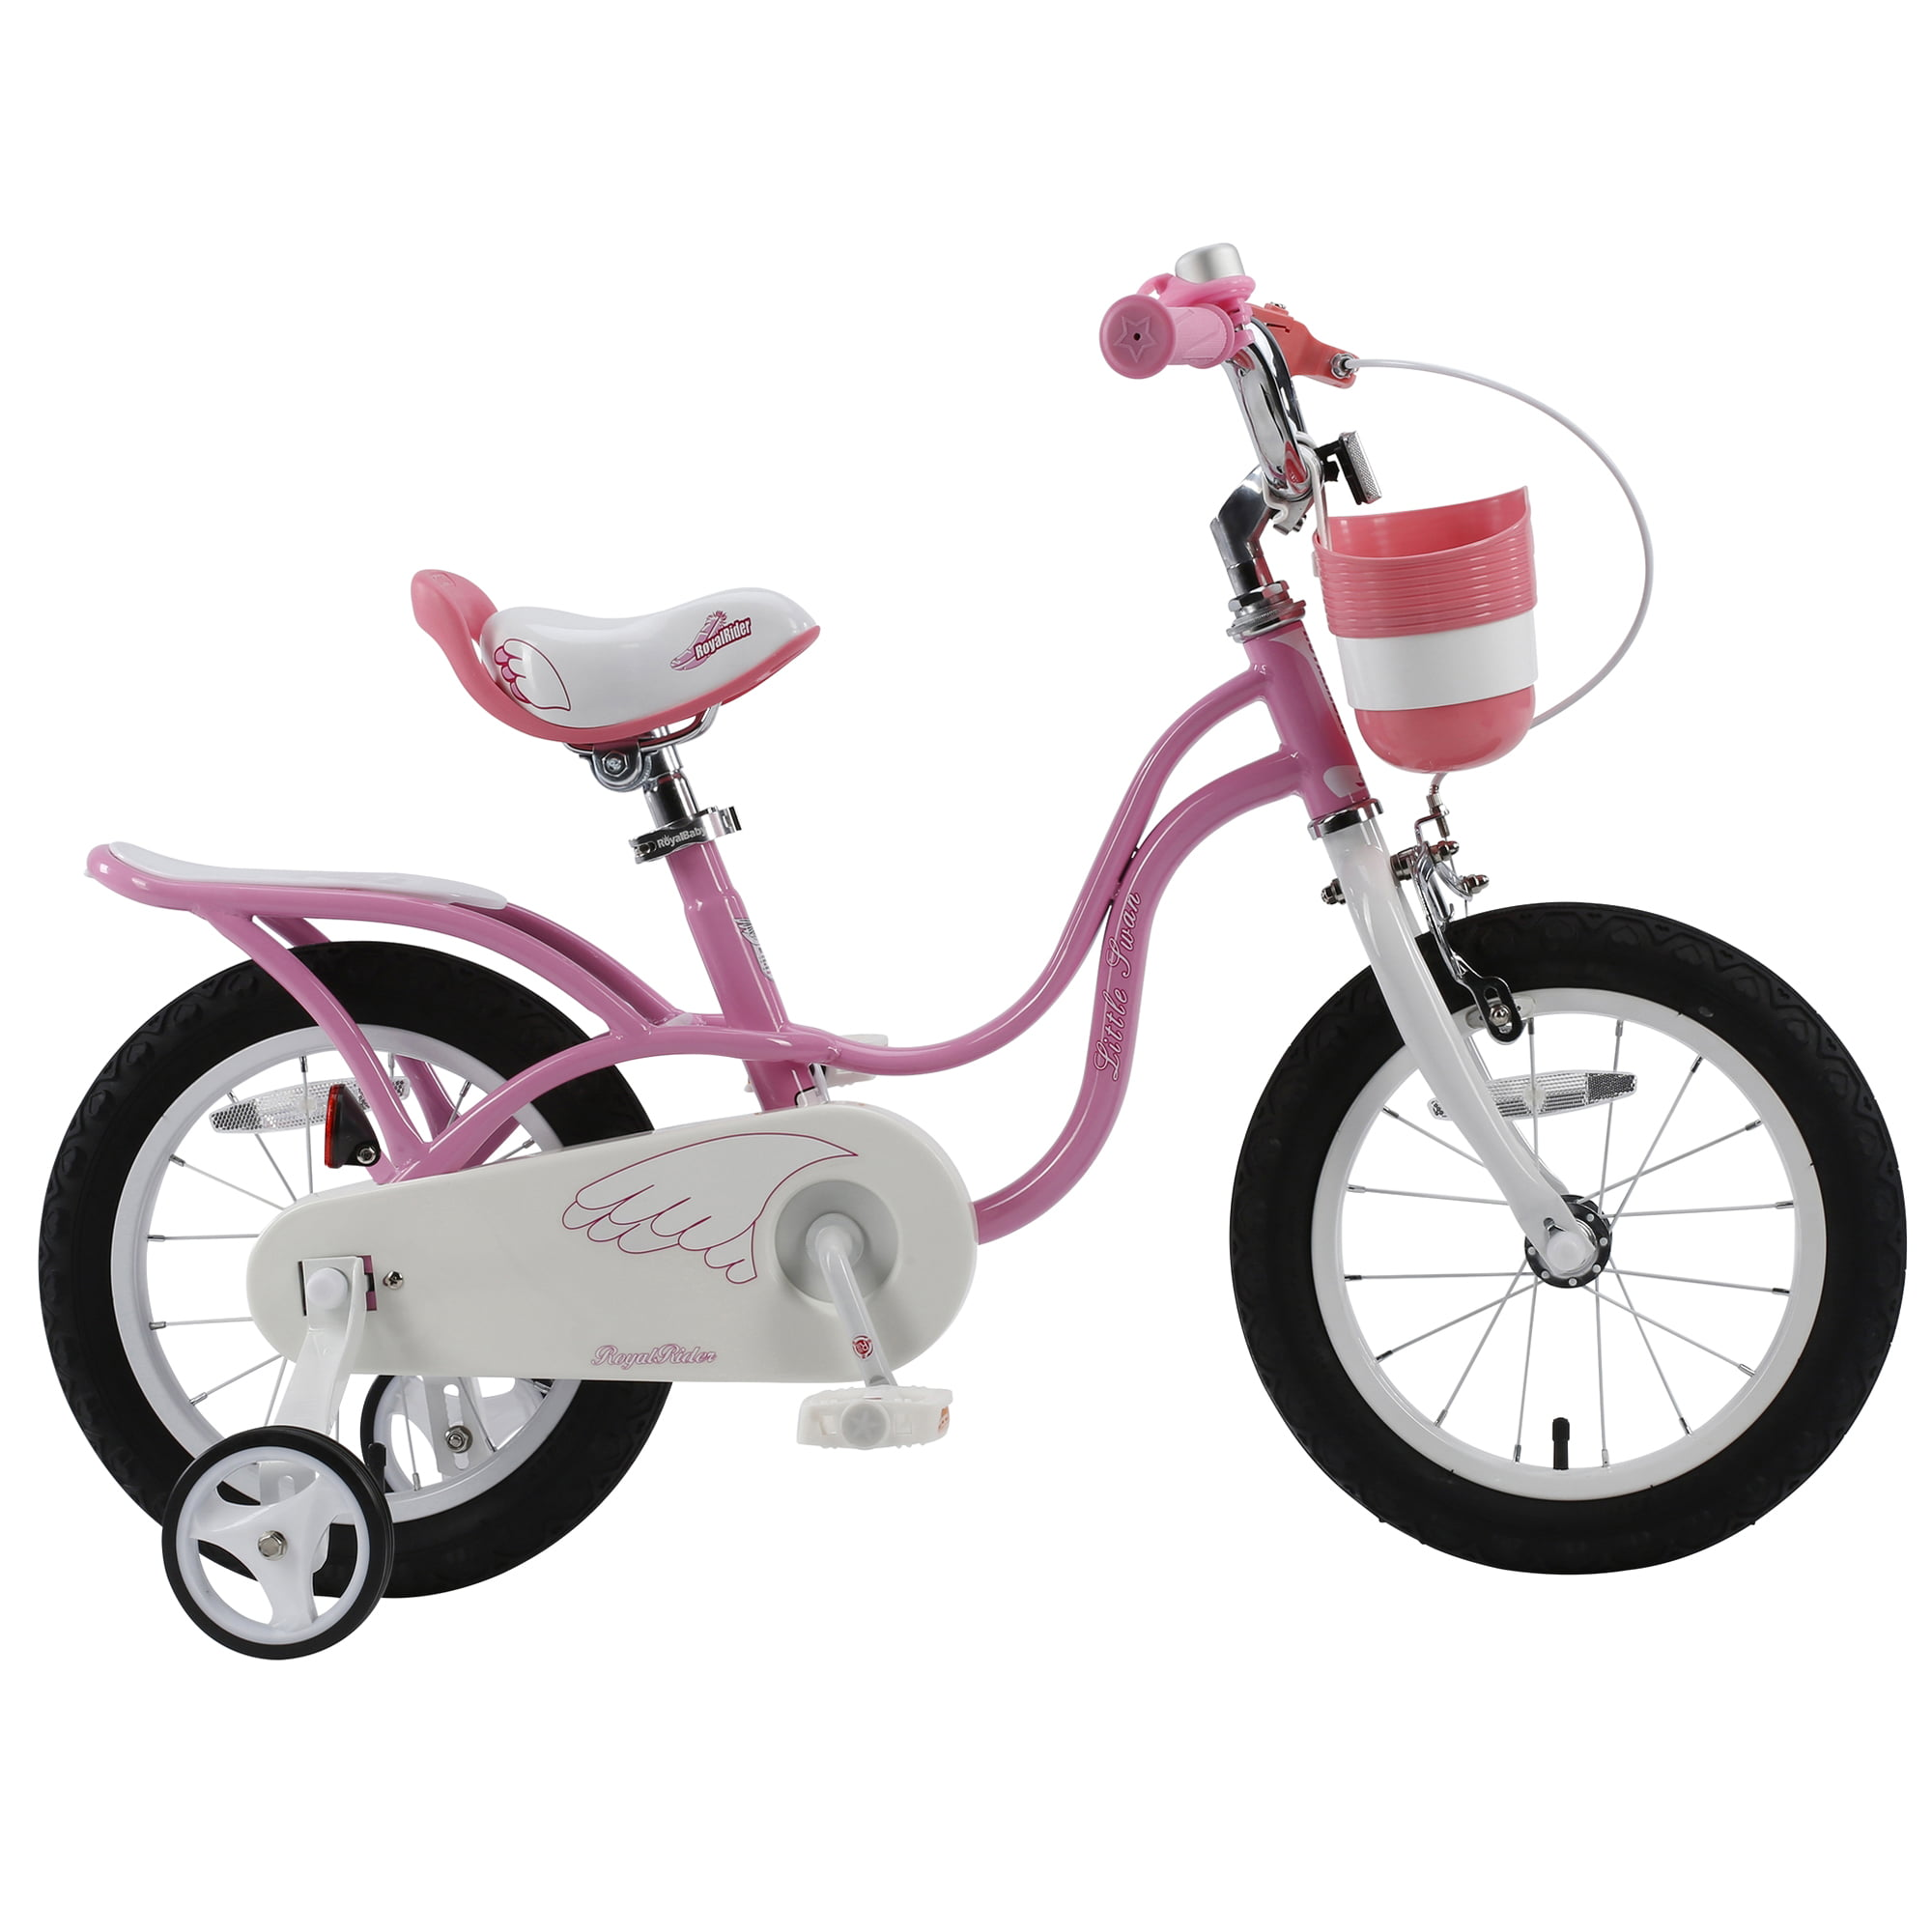 RoyalBaby Little Swan Girl's Bike with basket,16 inch with training wheels and kickstand, gifts for kids by Cycle Force Group